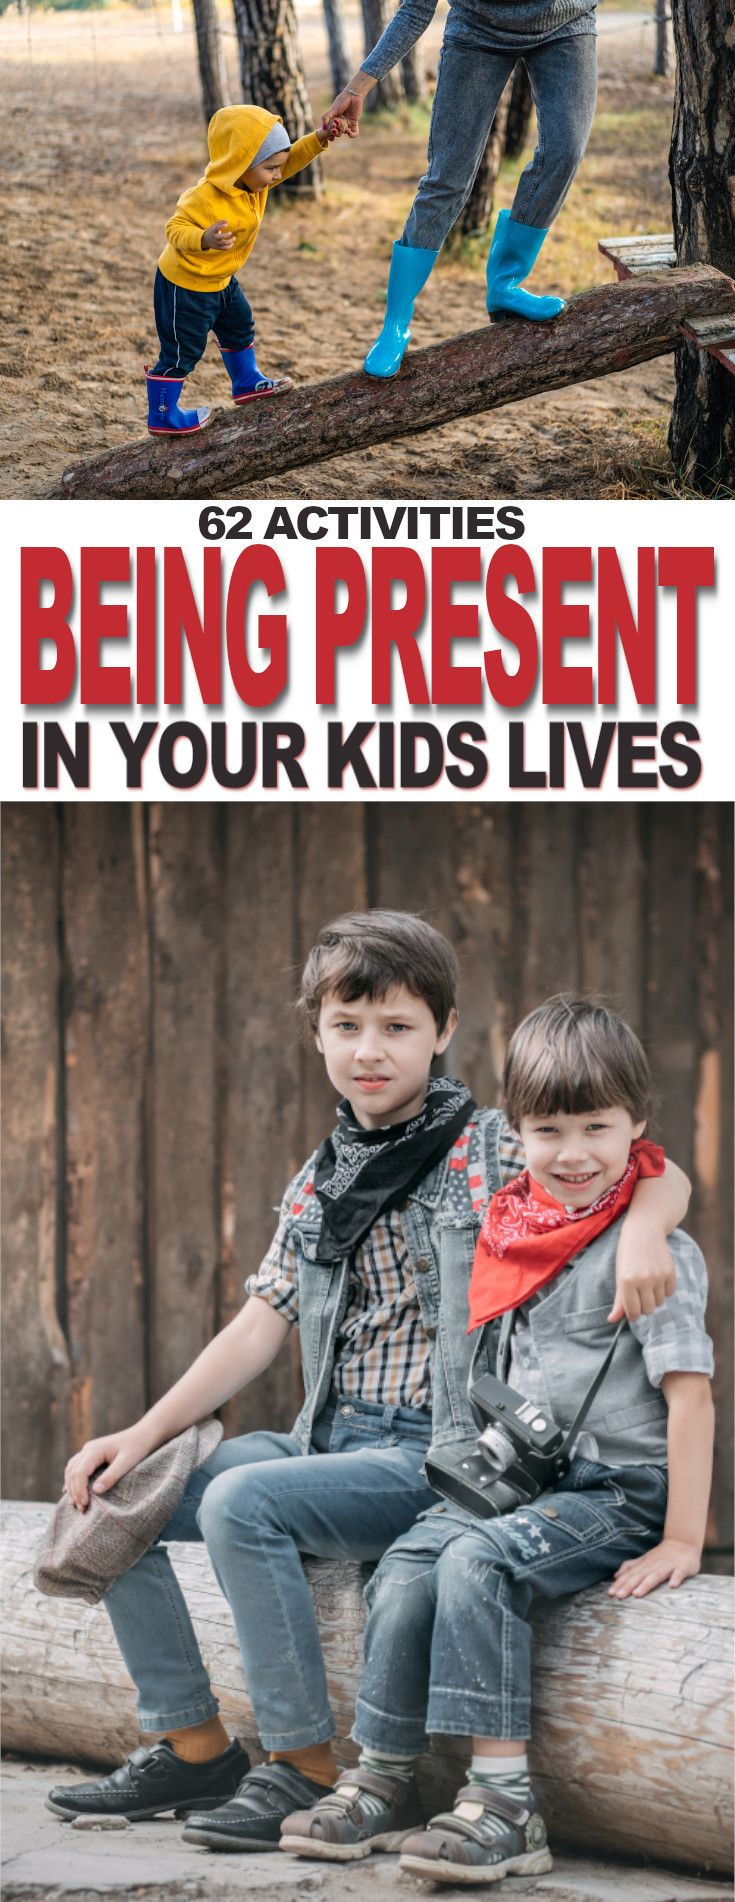 62 Ways to Be Present in Your Kids Lives Fluster Buster